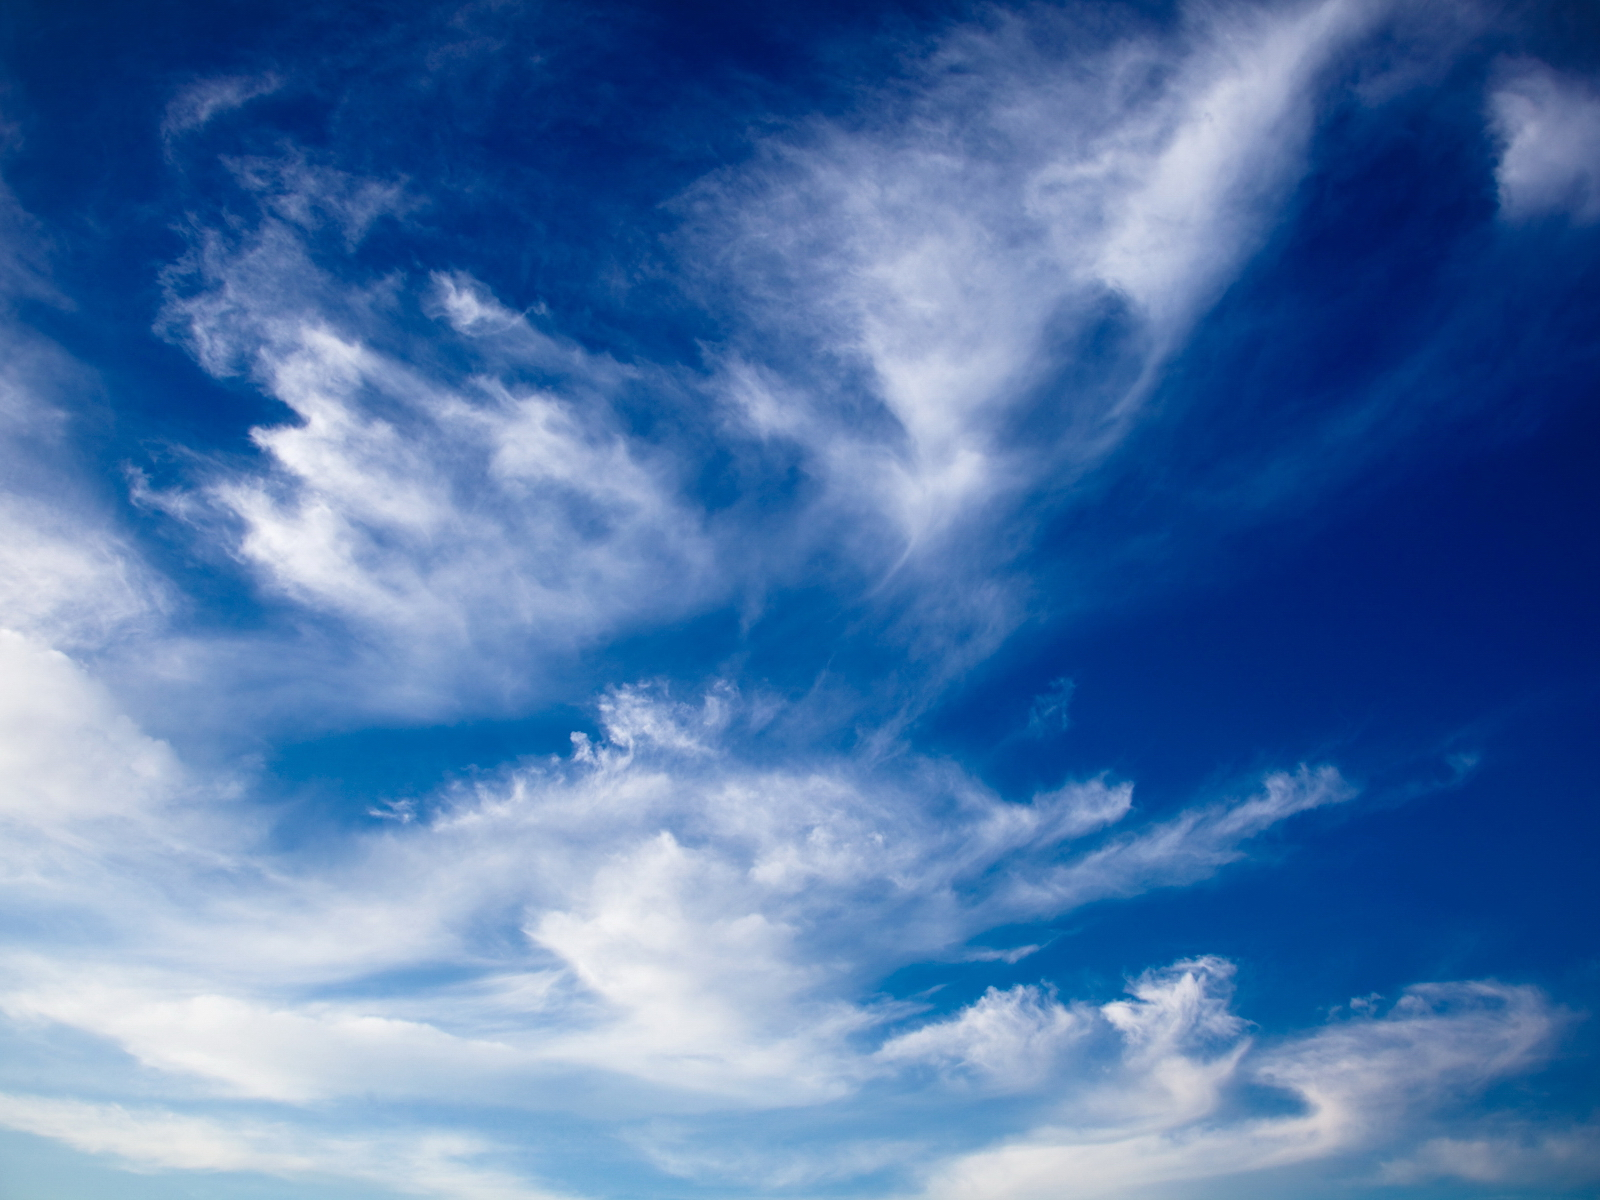 Wallpapers Clouds in The Sky Wallpaper 1600x1200